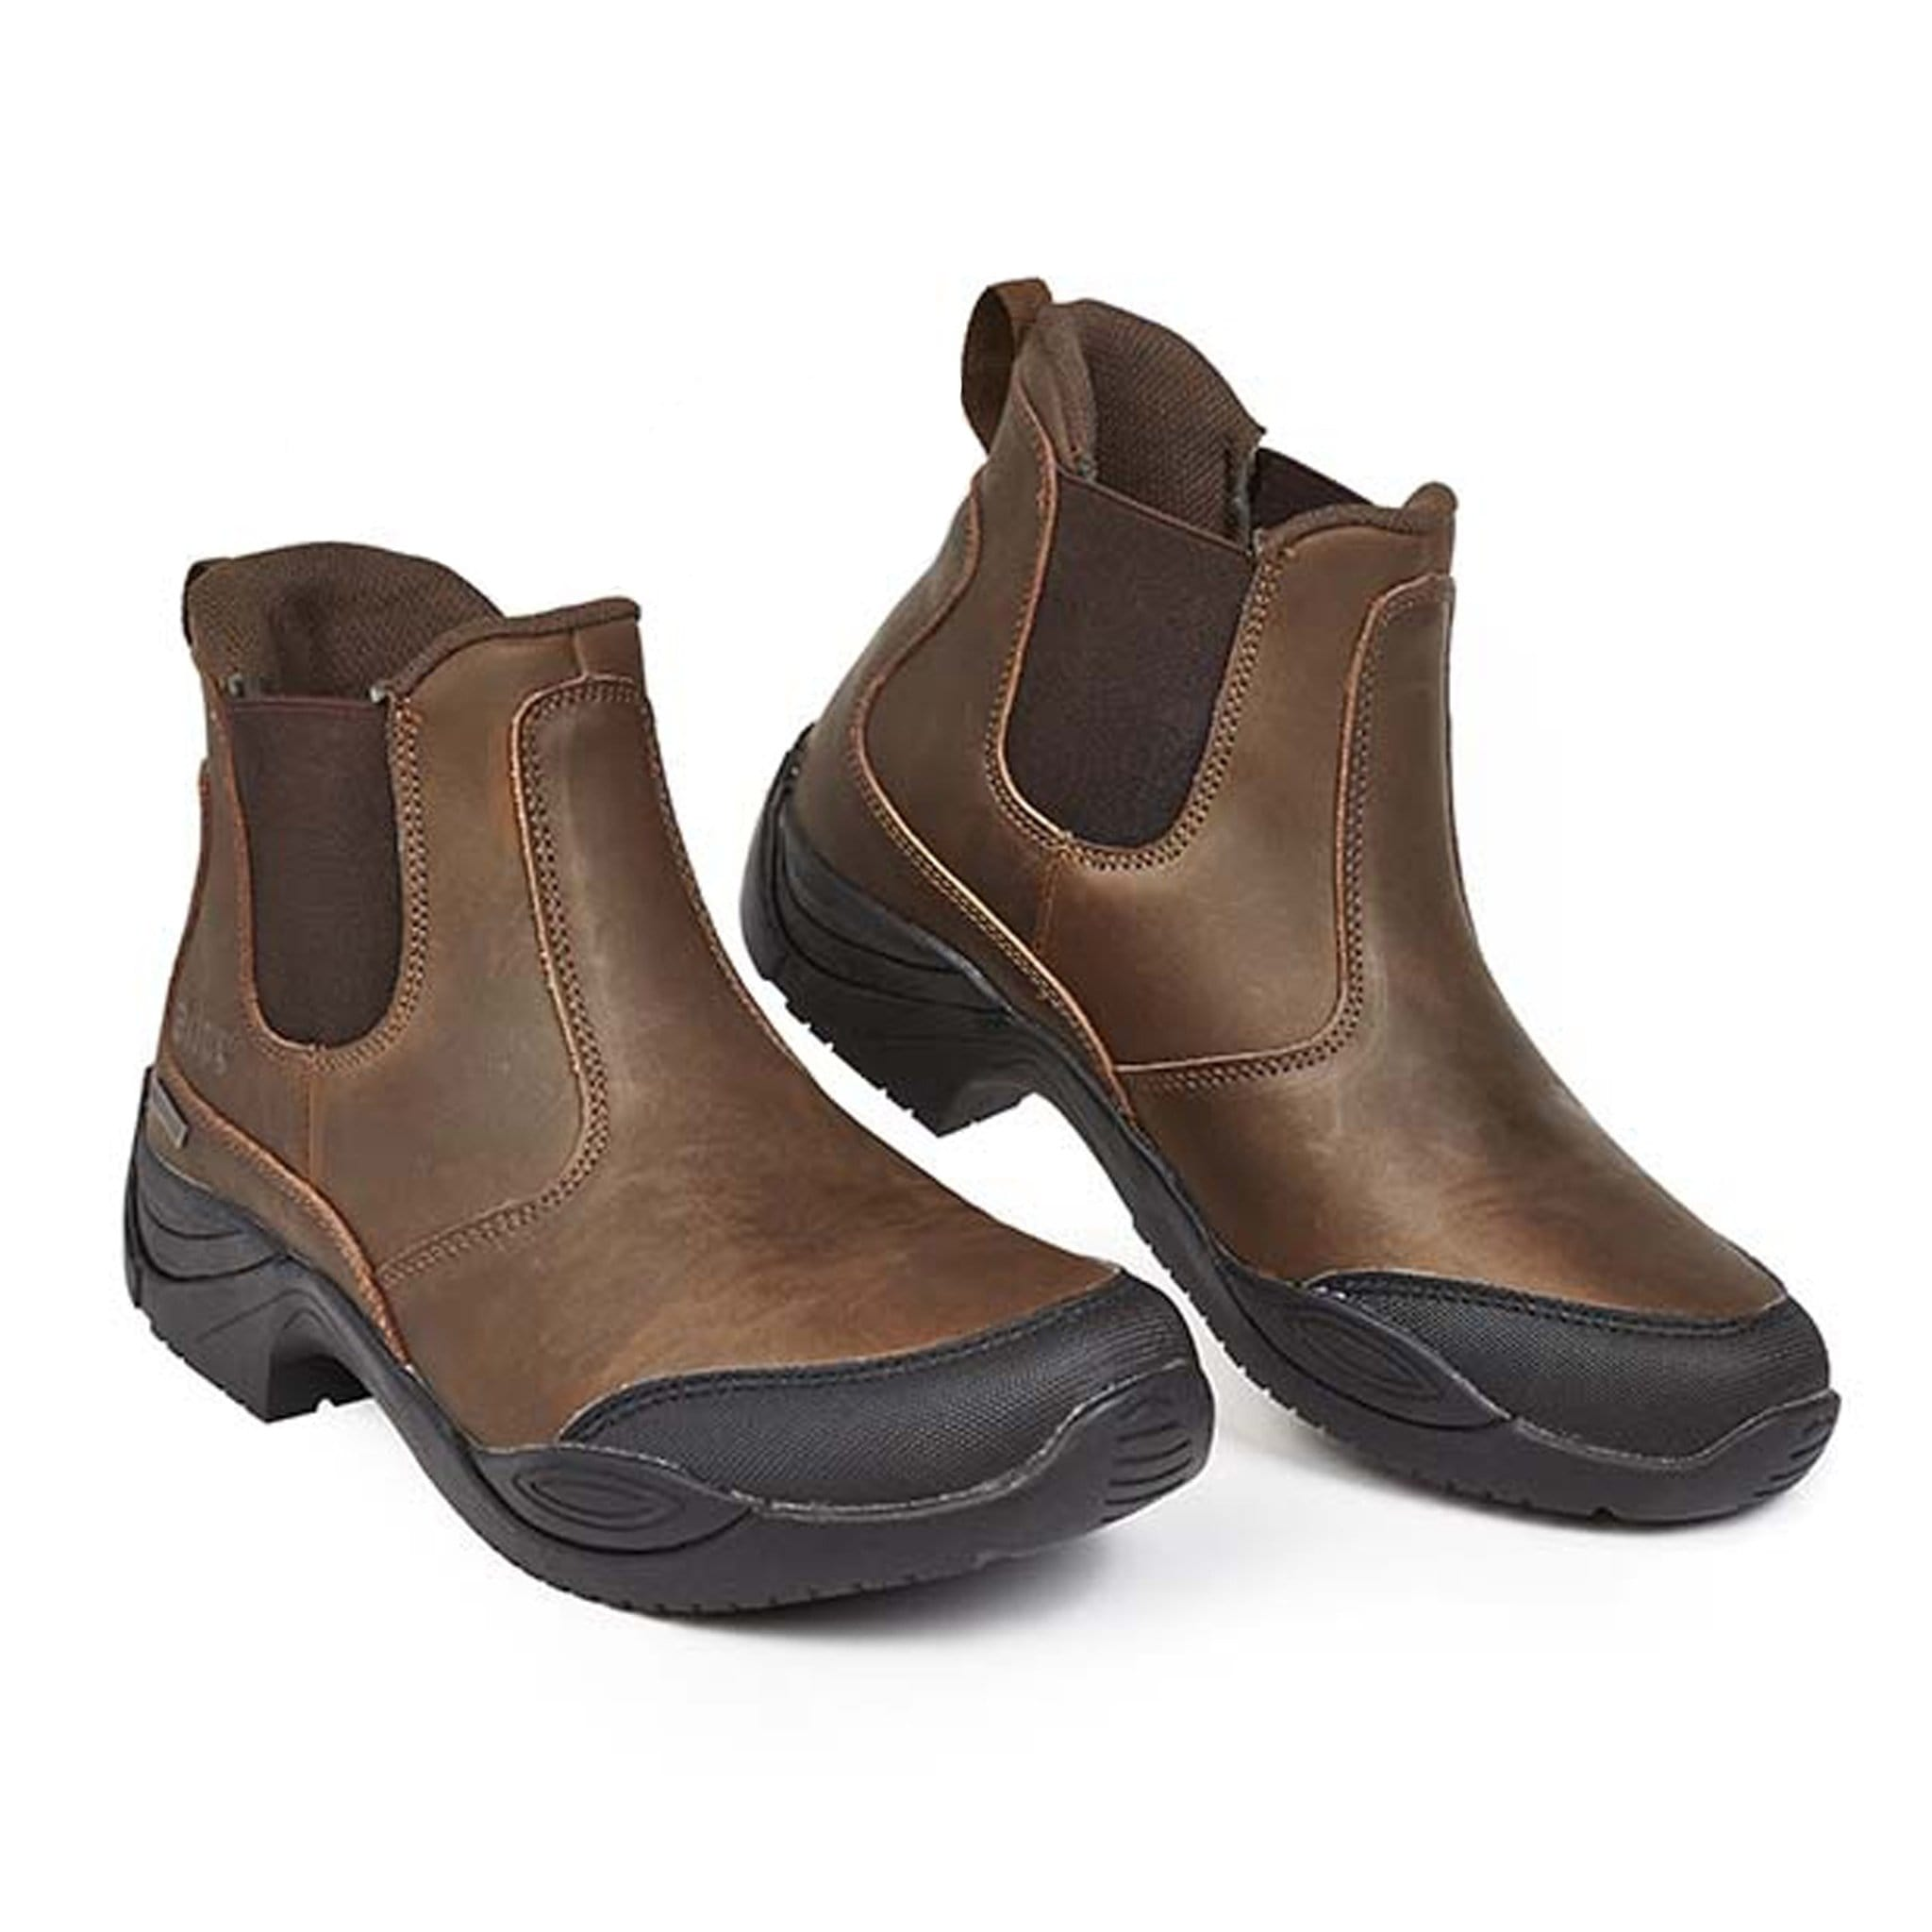 Elico Glencoe Yard Boots Brown Pair Waterproof Leather